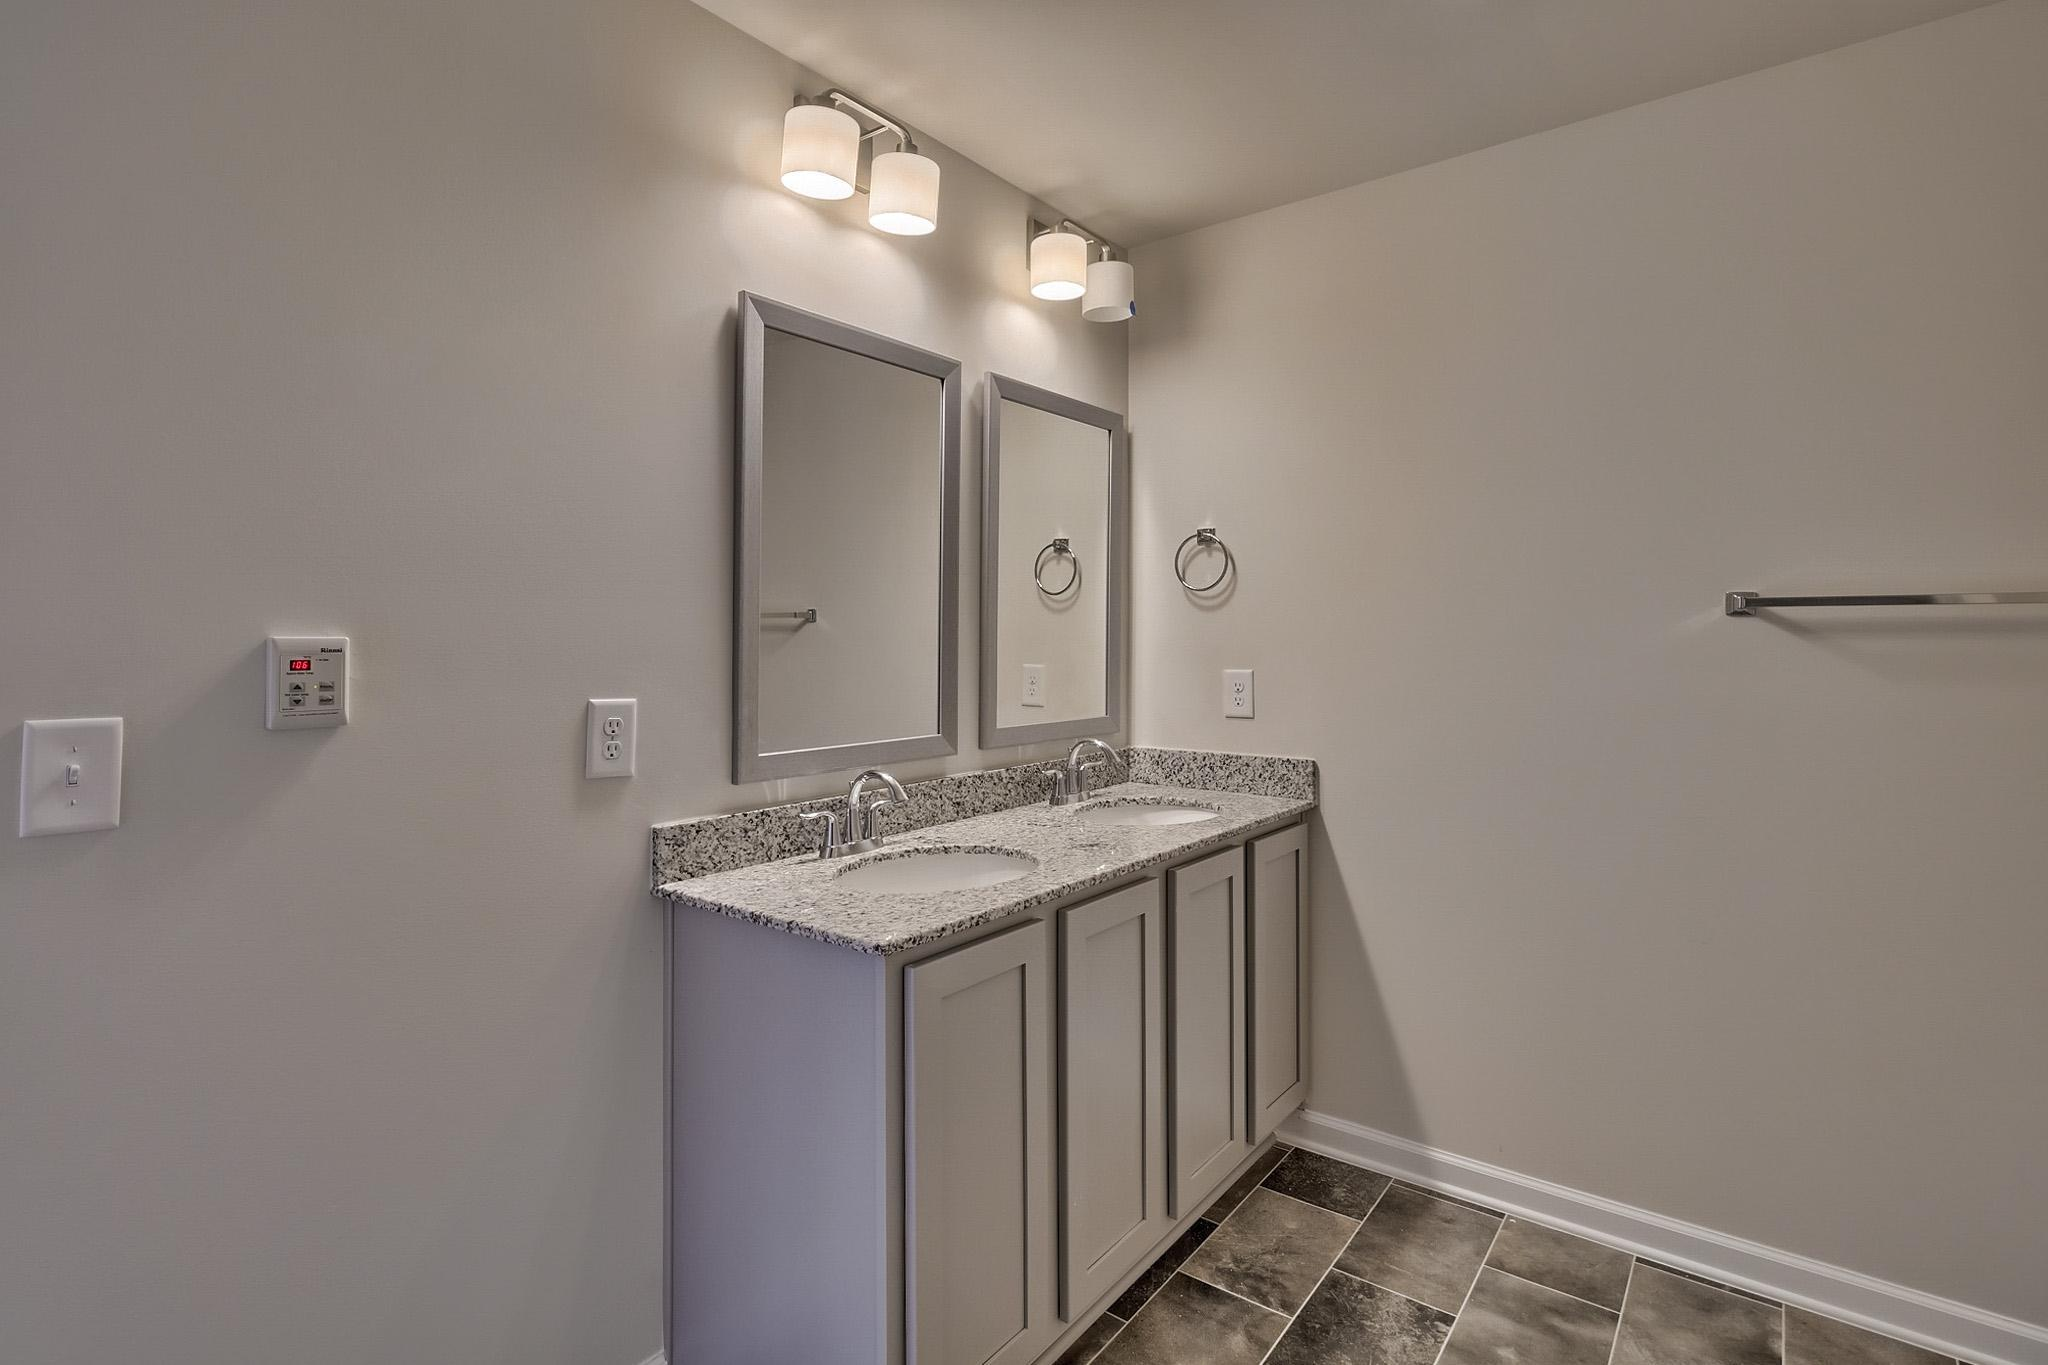 Bathroom featured in the Birch By McGuinn Hybrid Homes in Columbia, SC